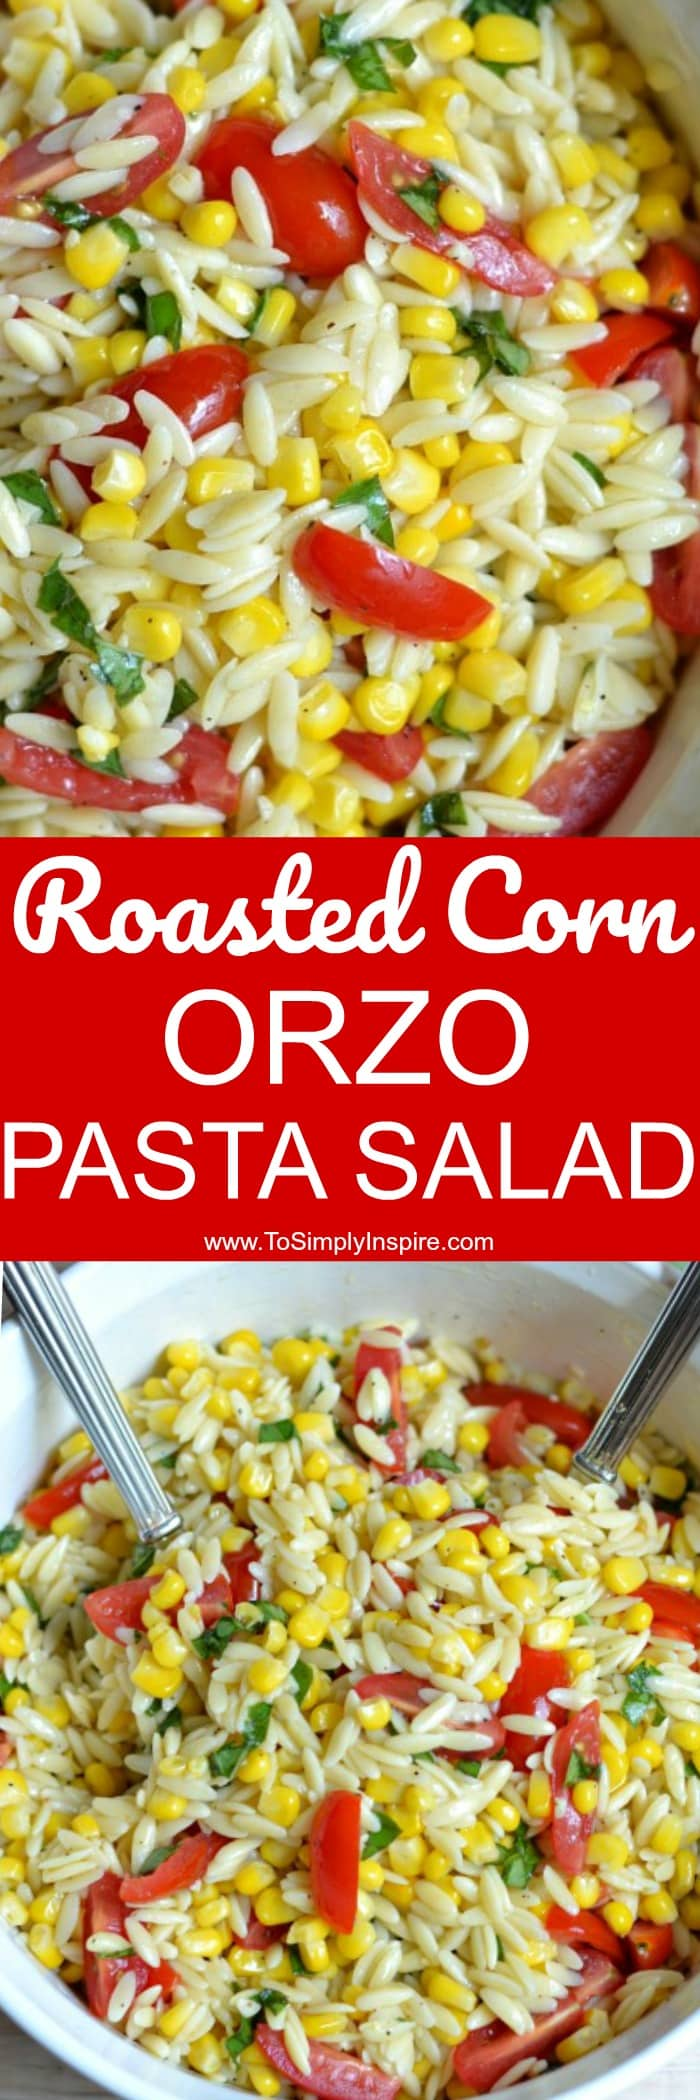 This Roasted Corn Orzo Pasta Salad has loads of delicious flavors from simply adding fresh basil and garlic along with a fabulous light sauce. Always a hit at any get-together.